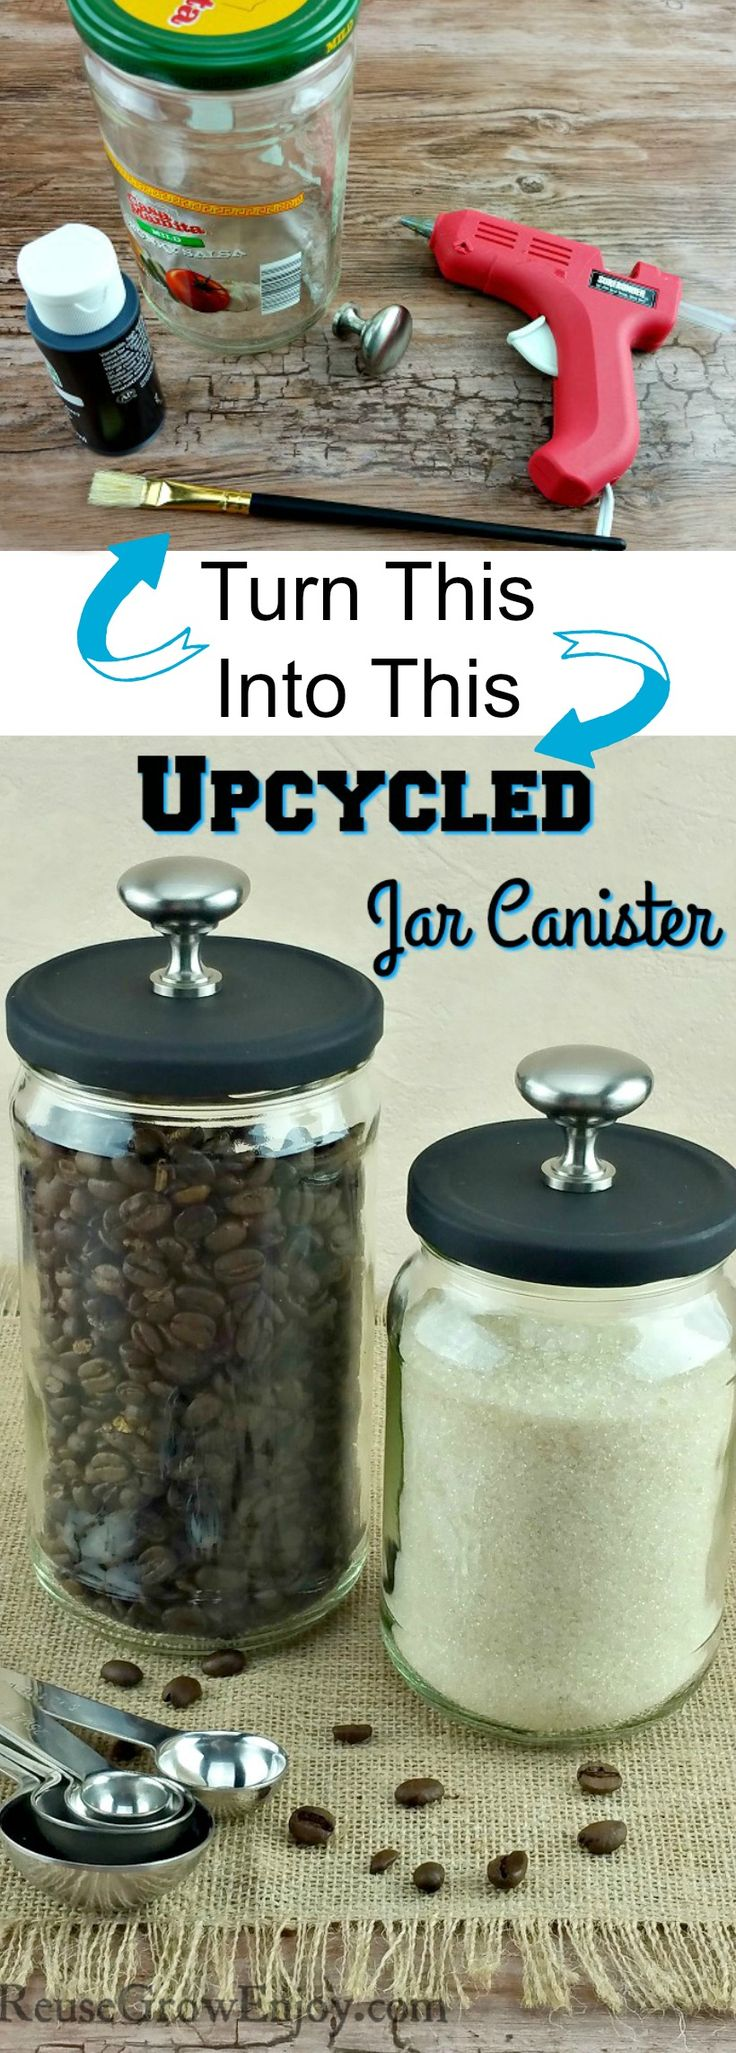 So easy to make this Upcycled Jar Canister and it looks awesome! …